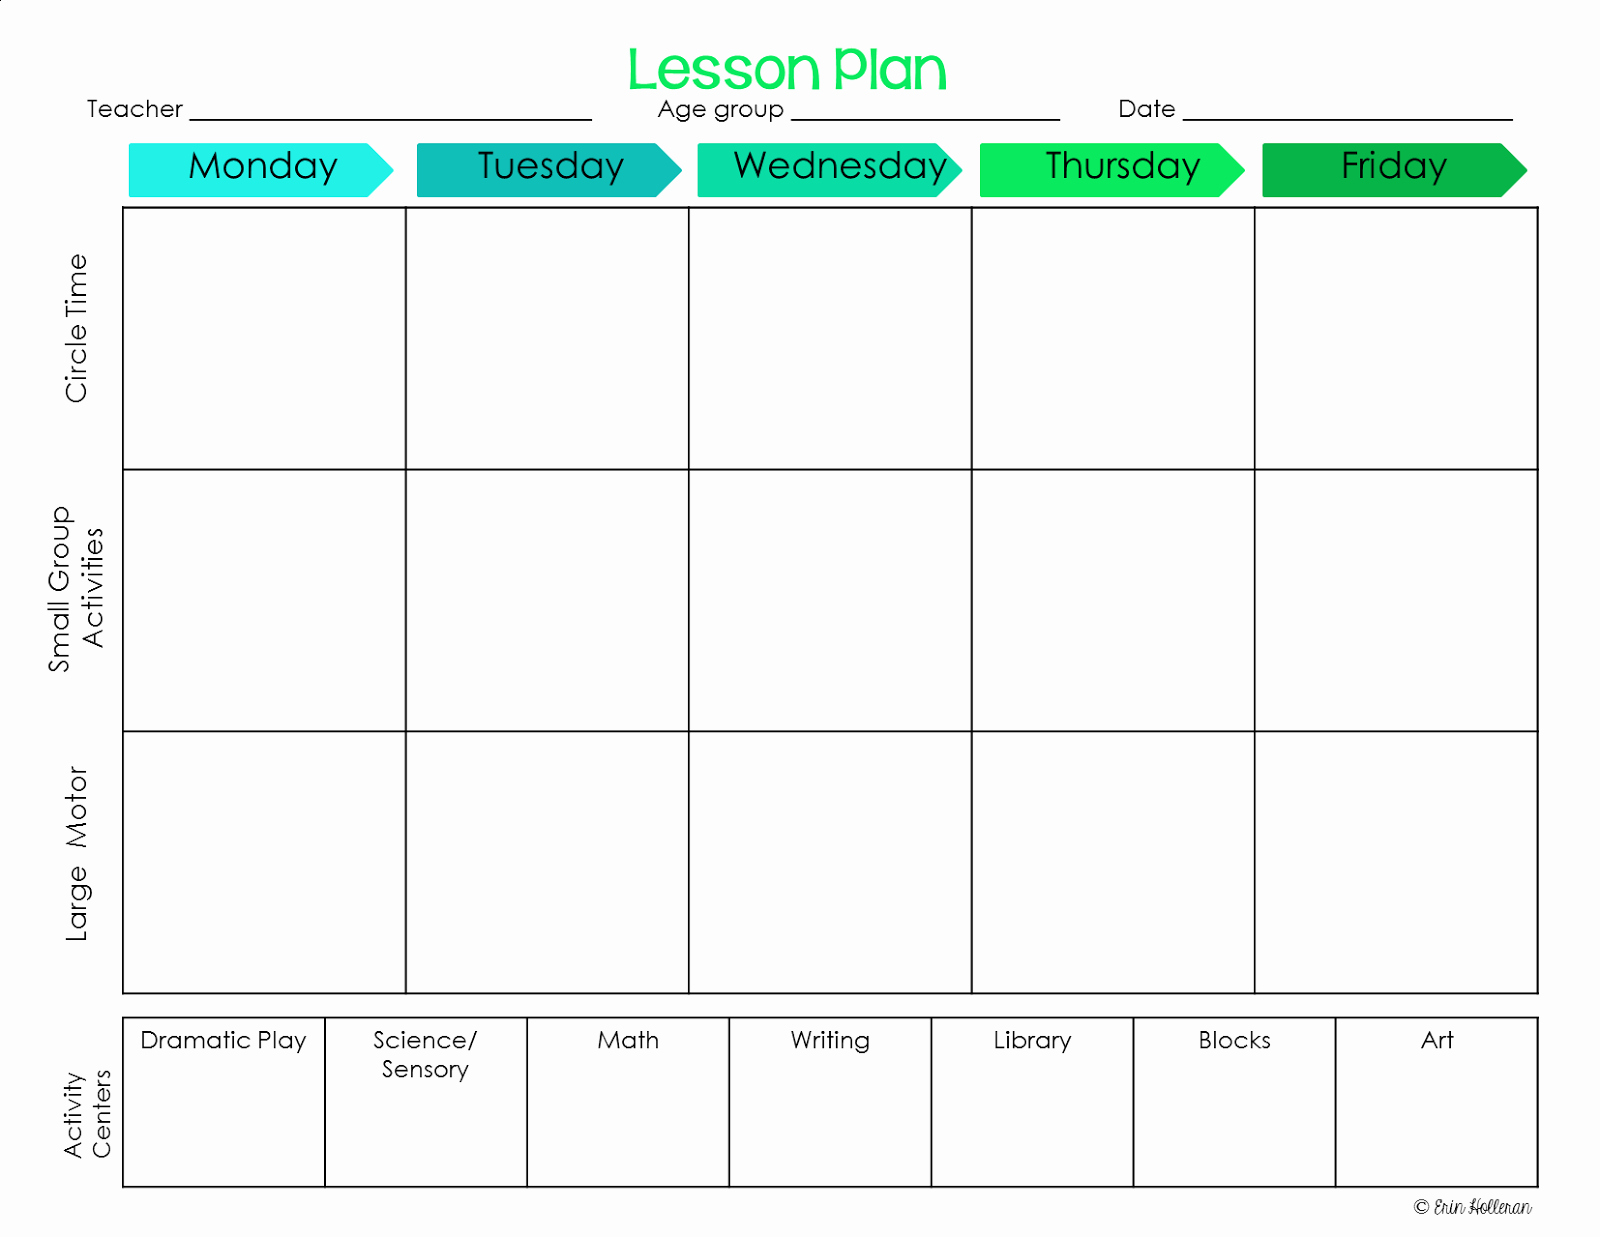 Lesson Plan Template for toddlers Best Of Preschool Ponderings Make Your Lesson Plans Work for You